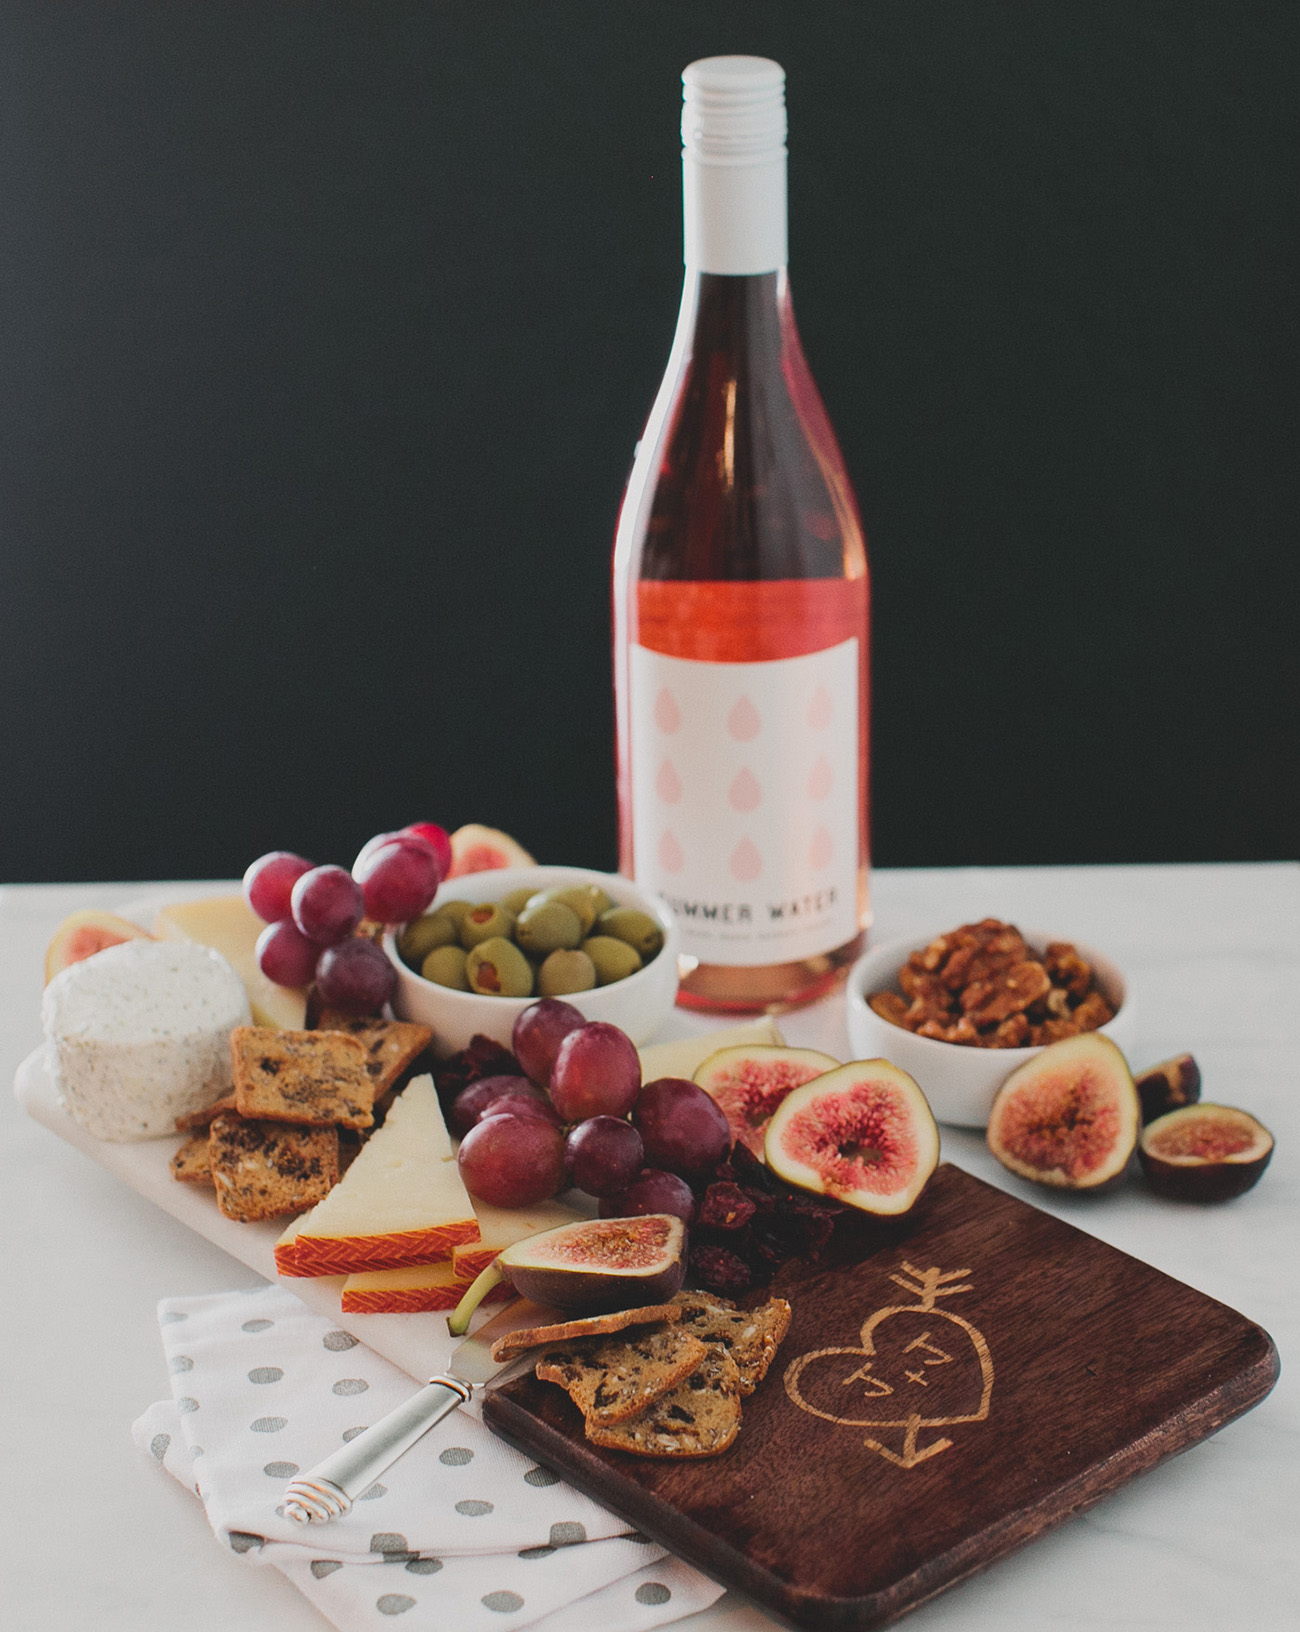 personalized marble and wood cheeseboard from shutterfly